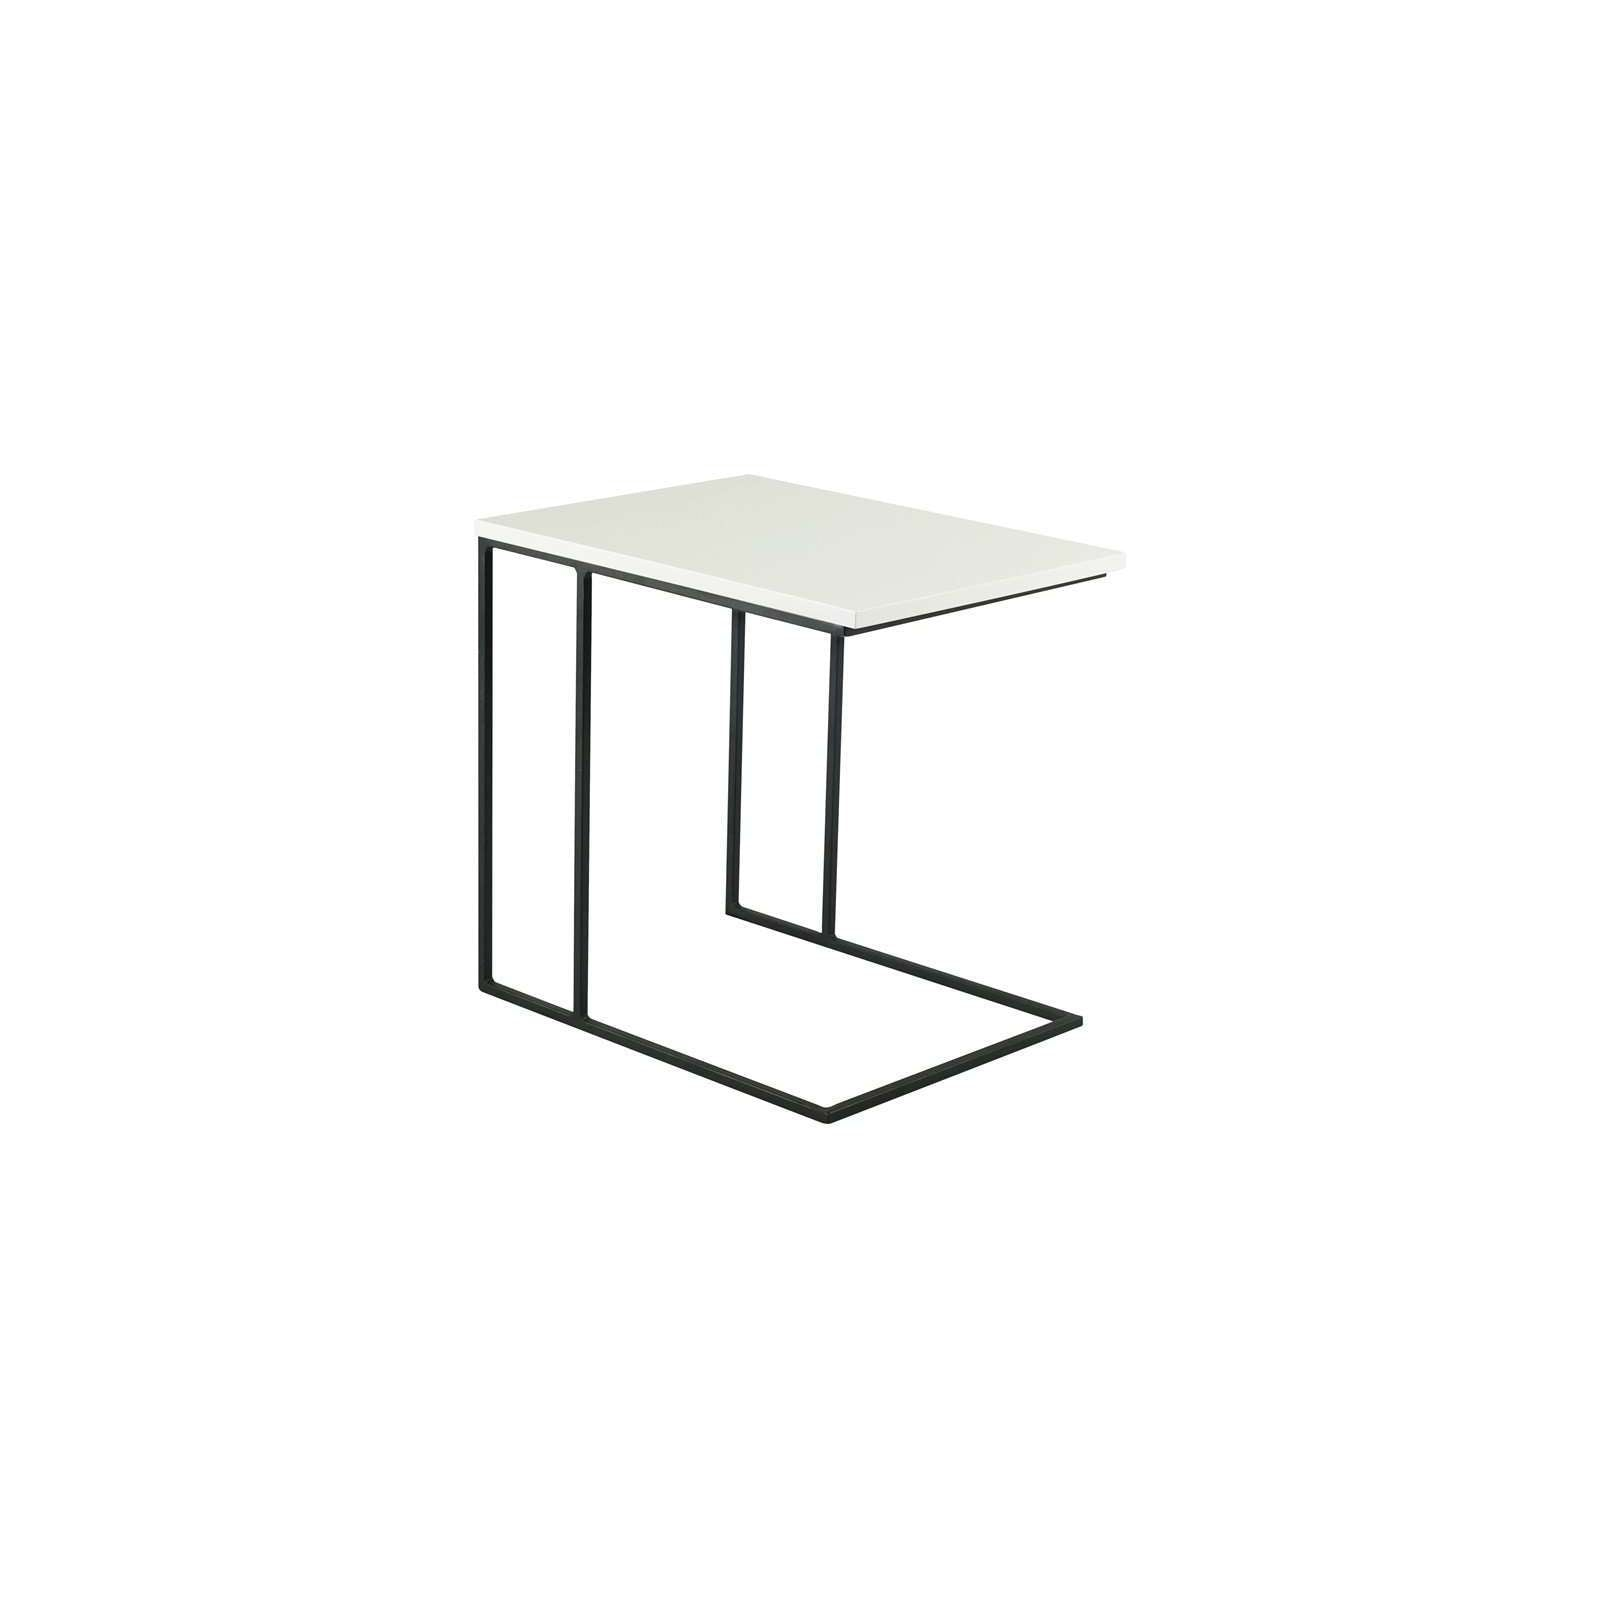 MYRON Side Table in Matt Black Epoxy Leg with White Lacquered Top